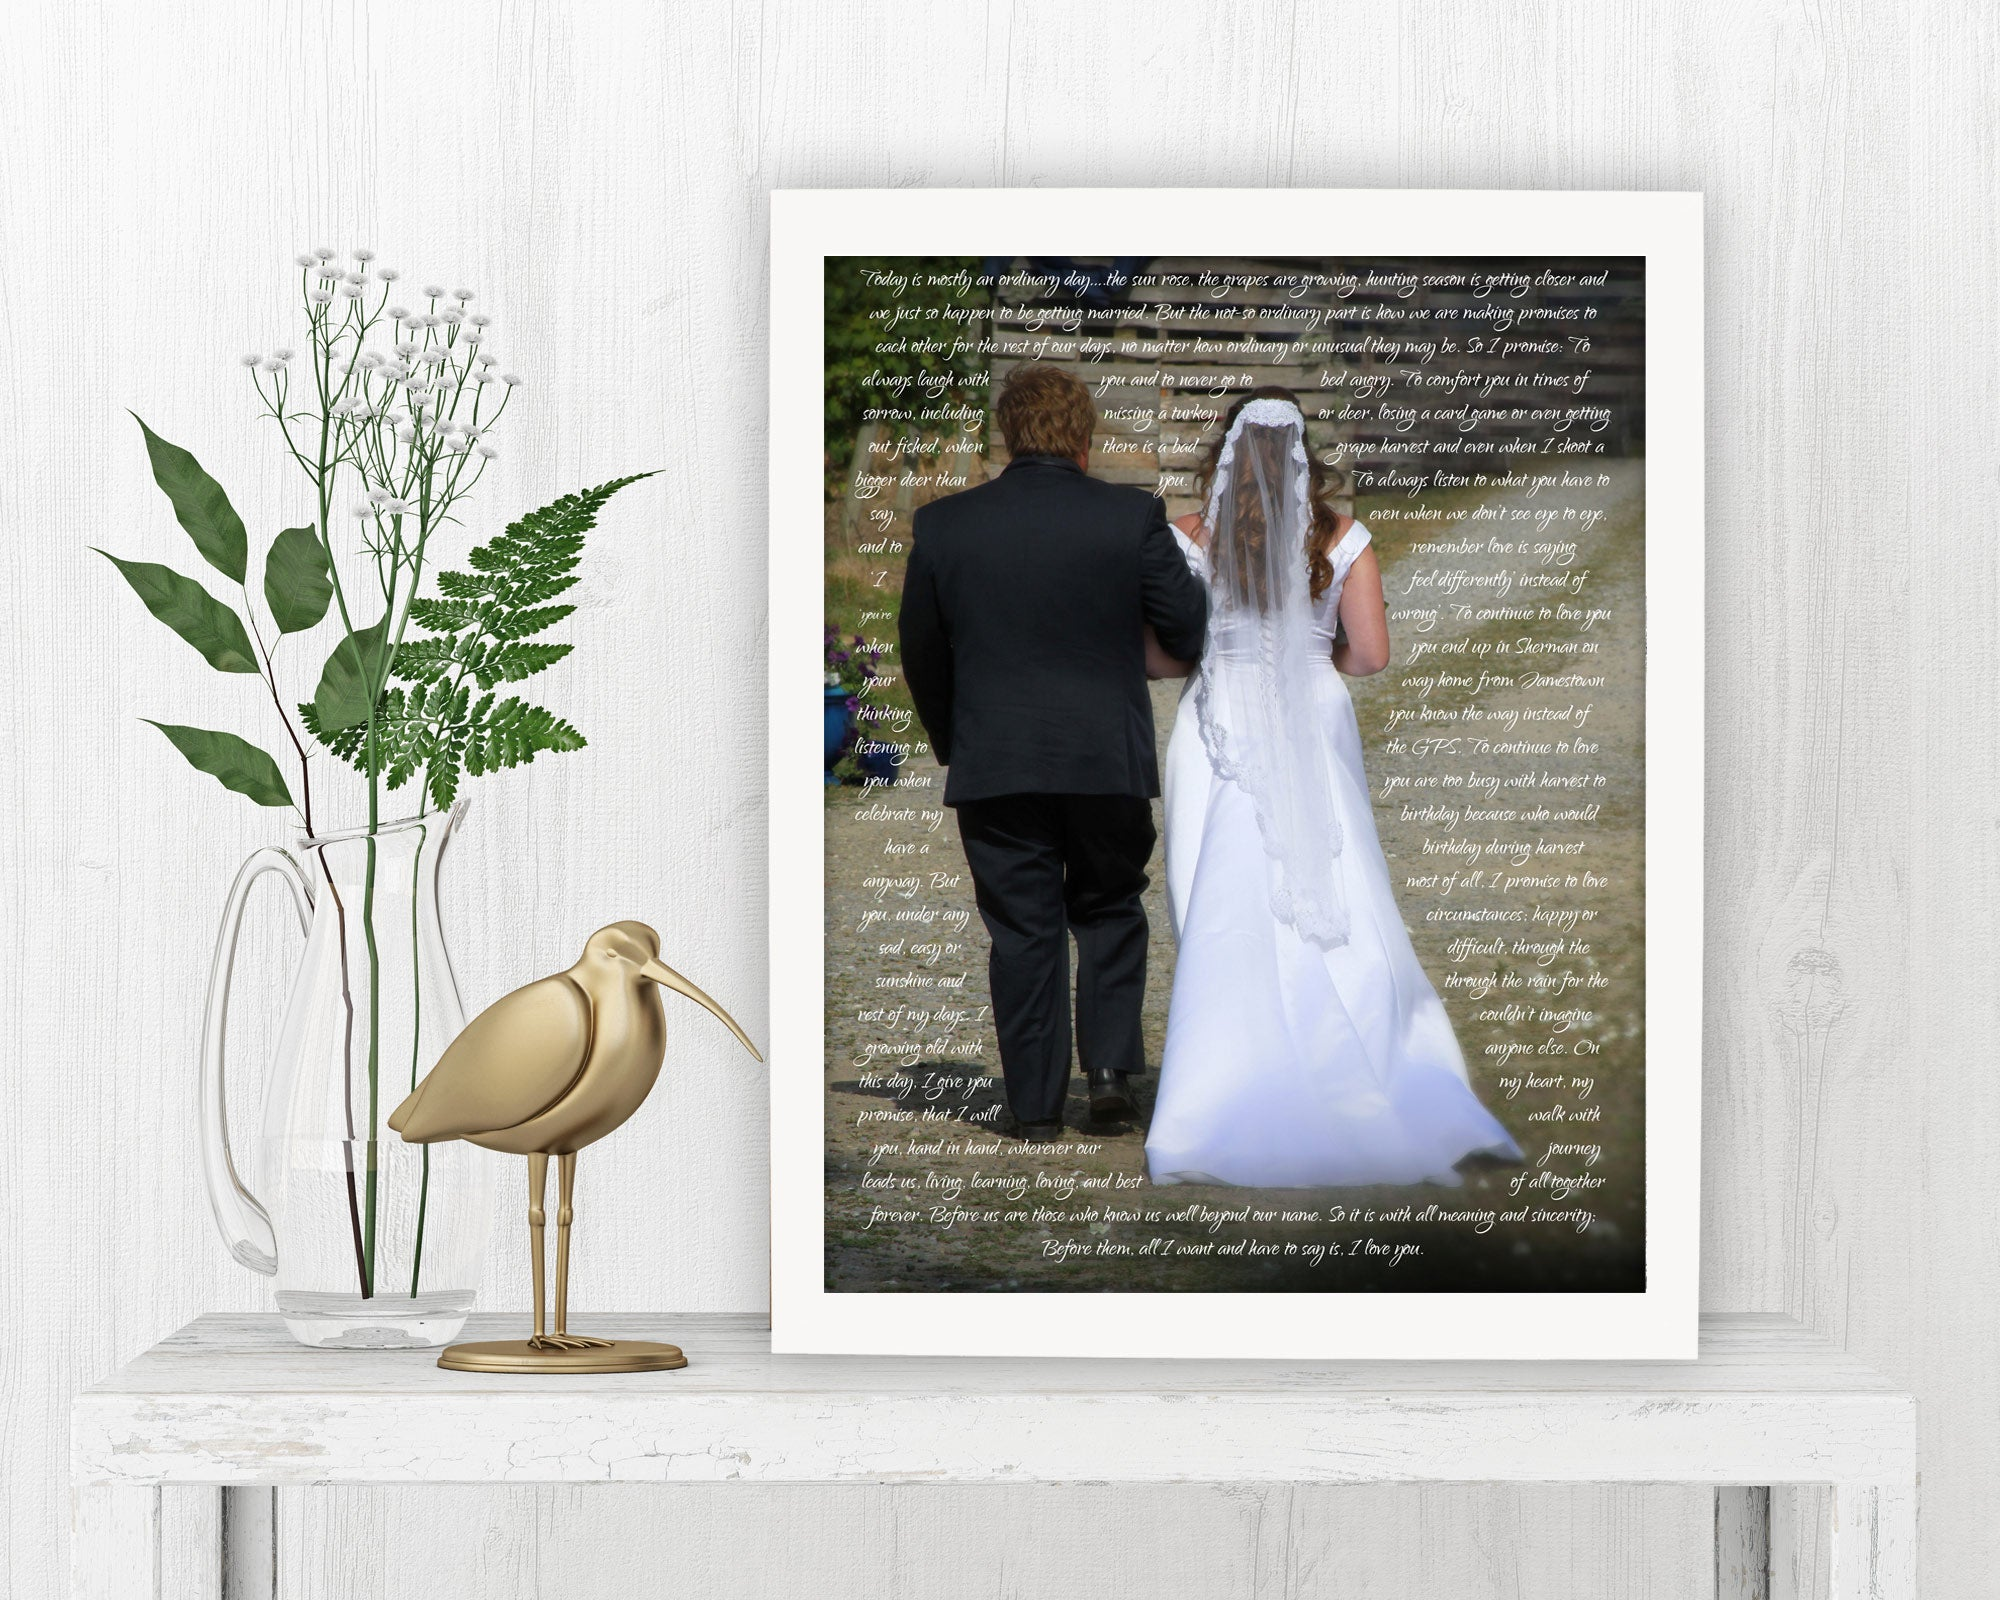 Framed Vows with Photo - Fine art and canvas personalized anniversary and inspirational gifts